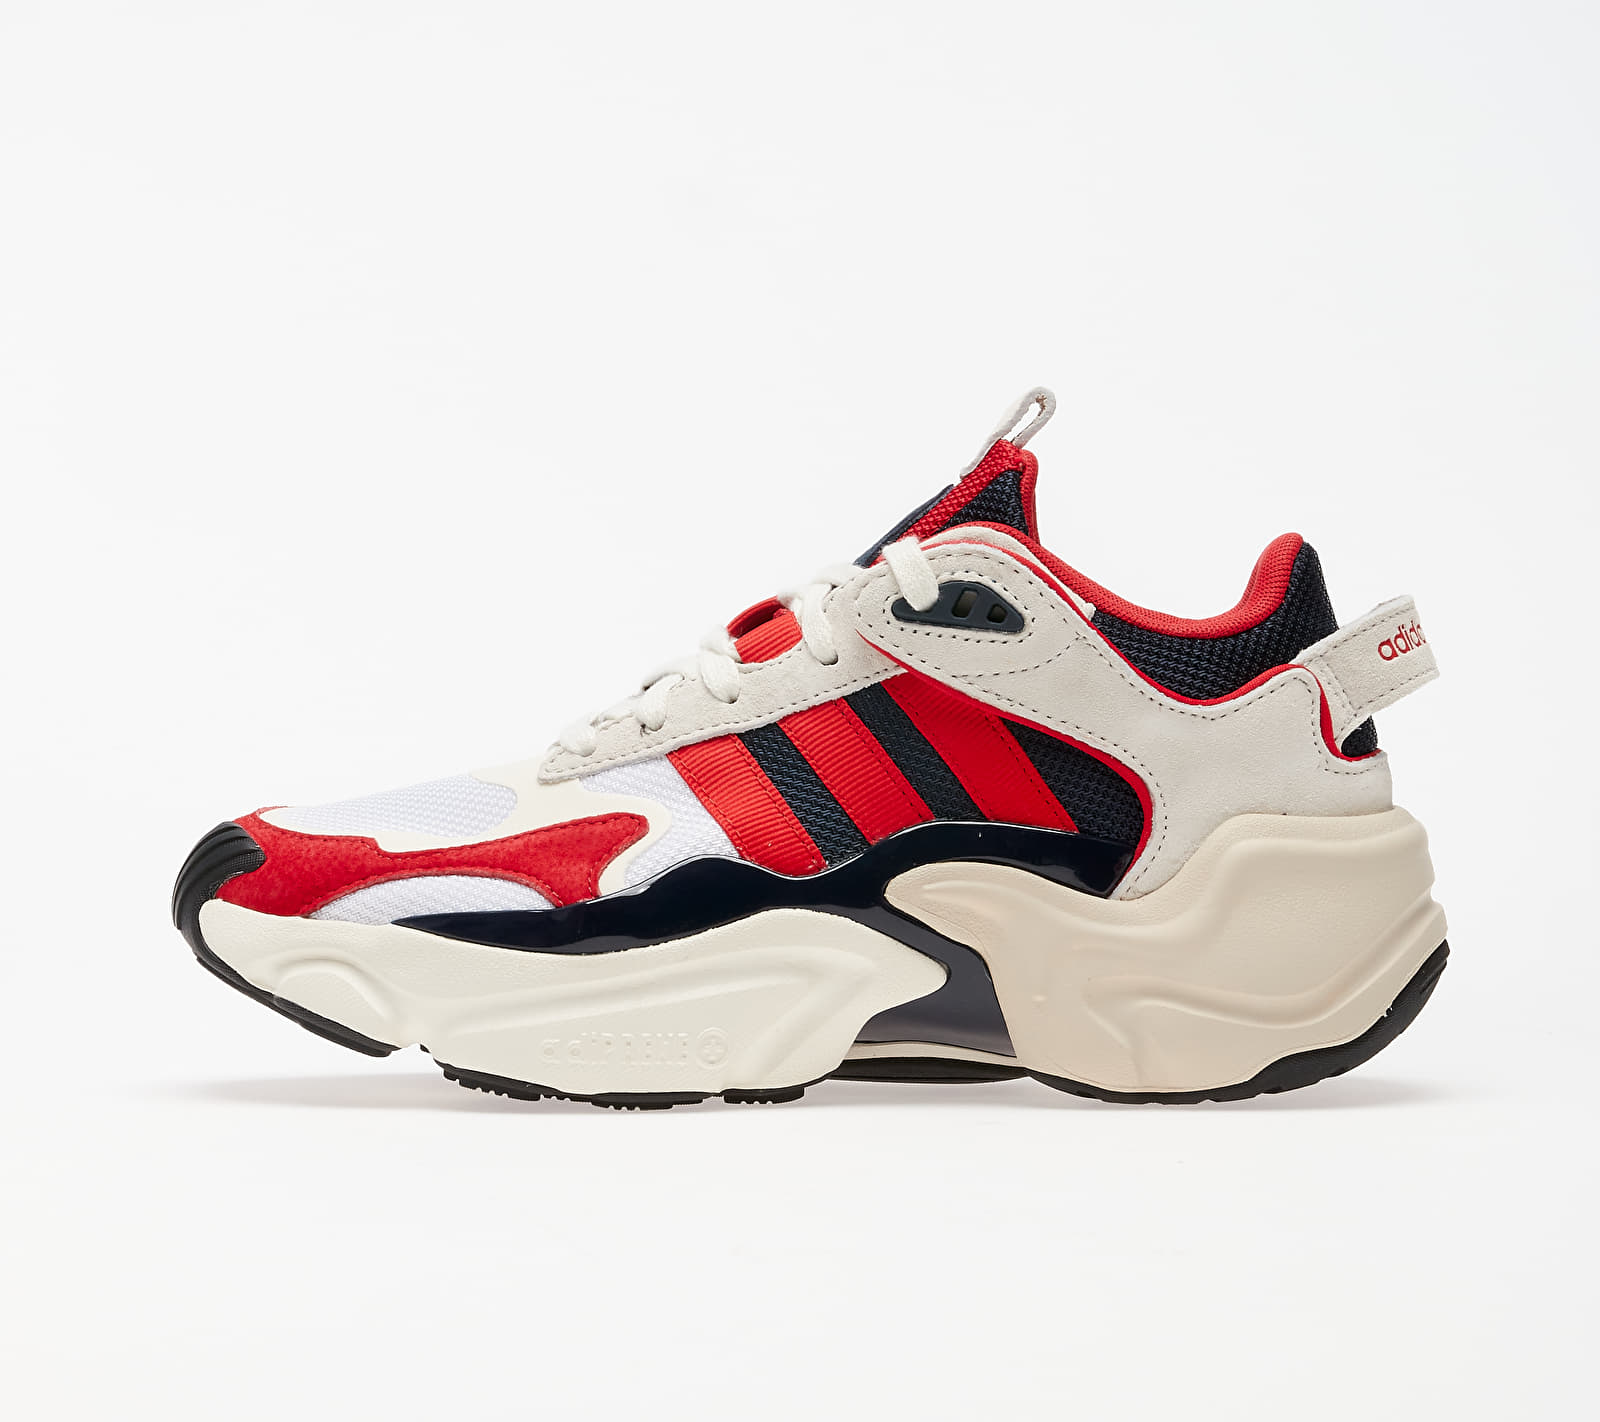 adidas Magmur Runner W Legend Ink/ Lust Red/ Ftw White EUR 40